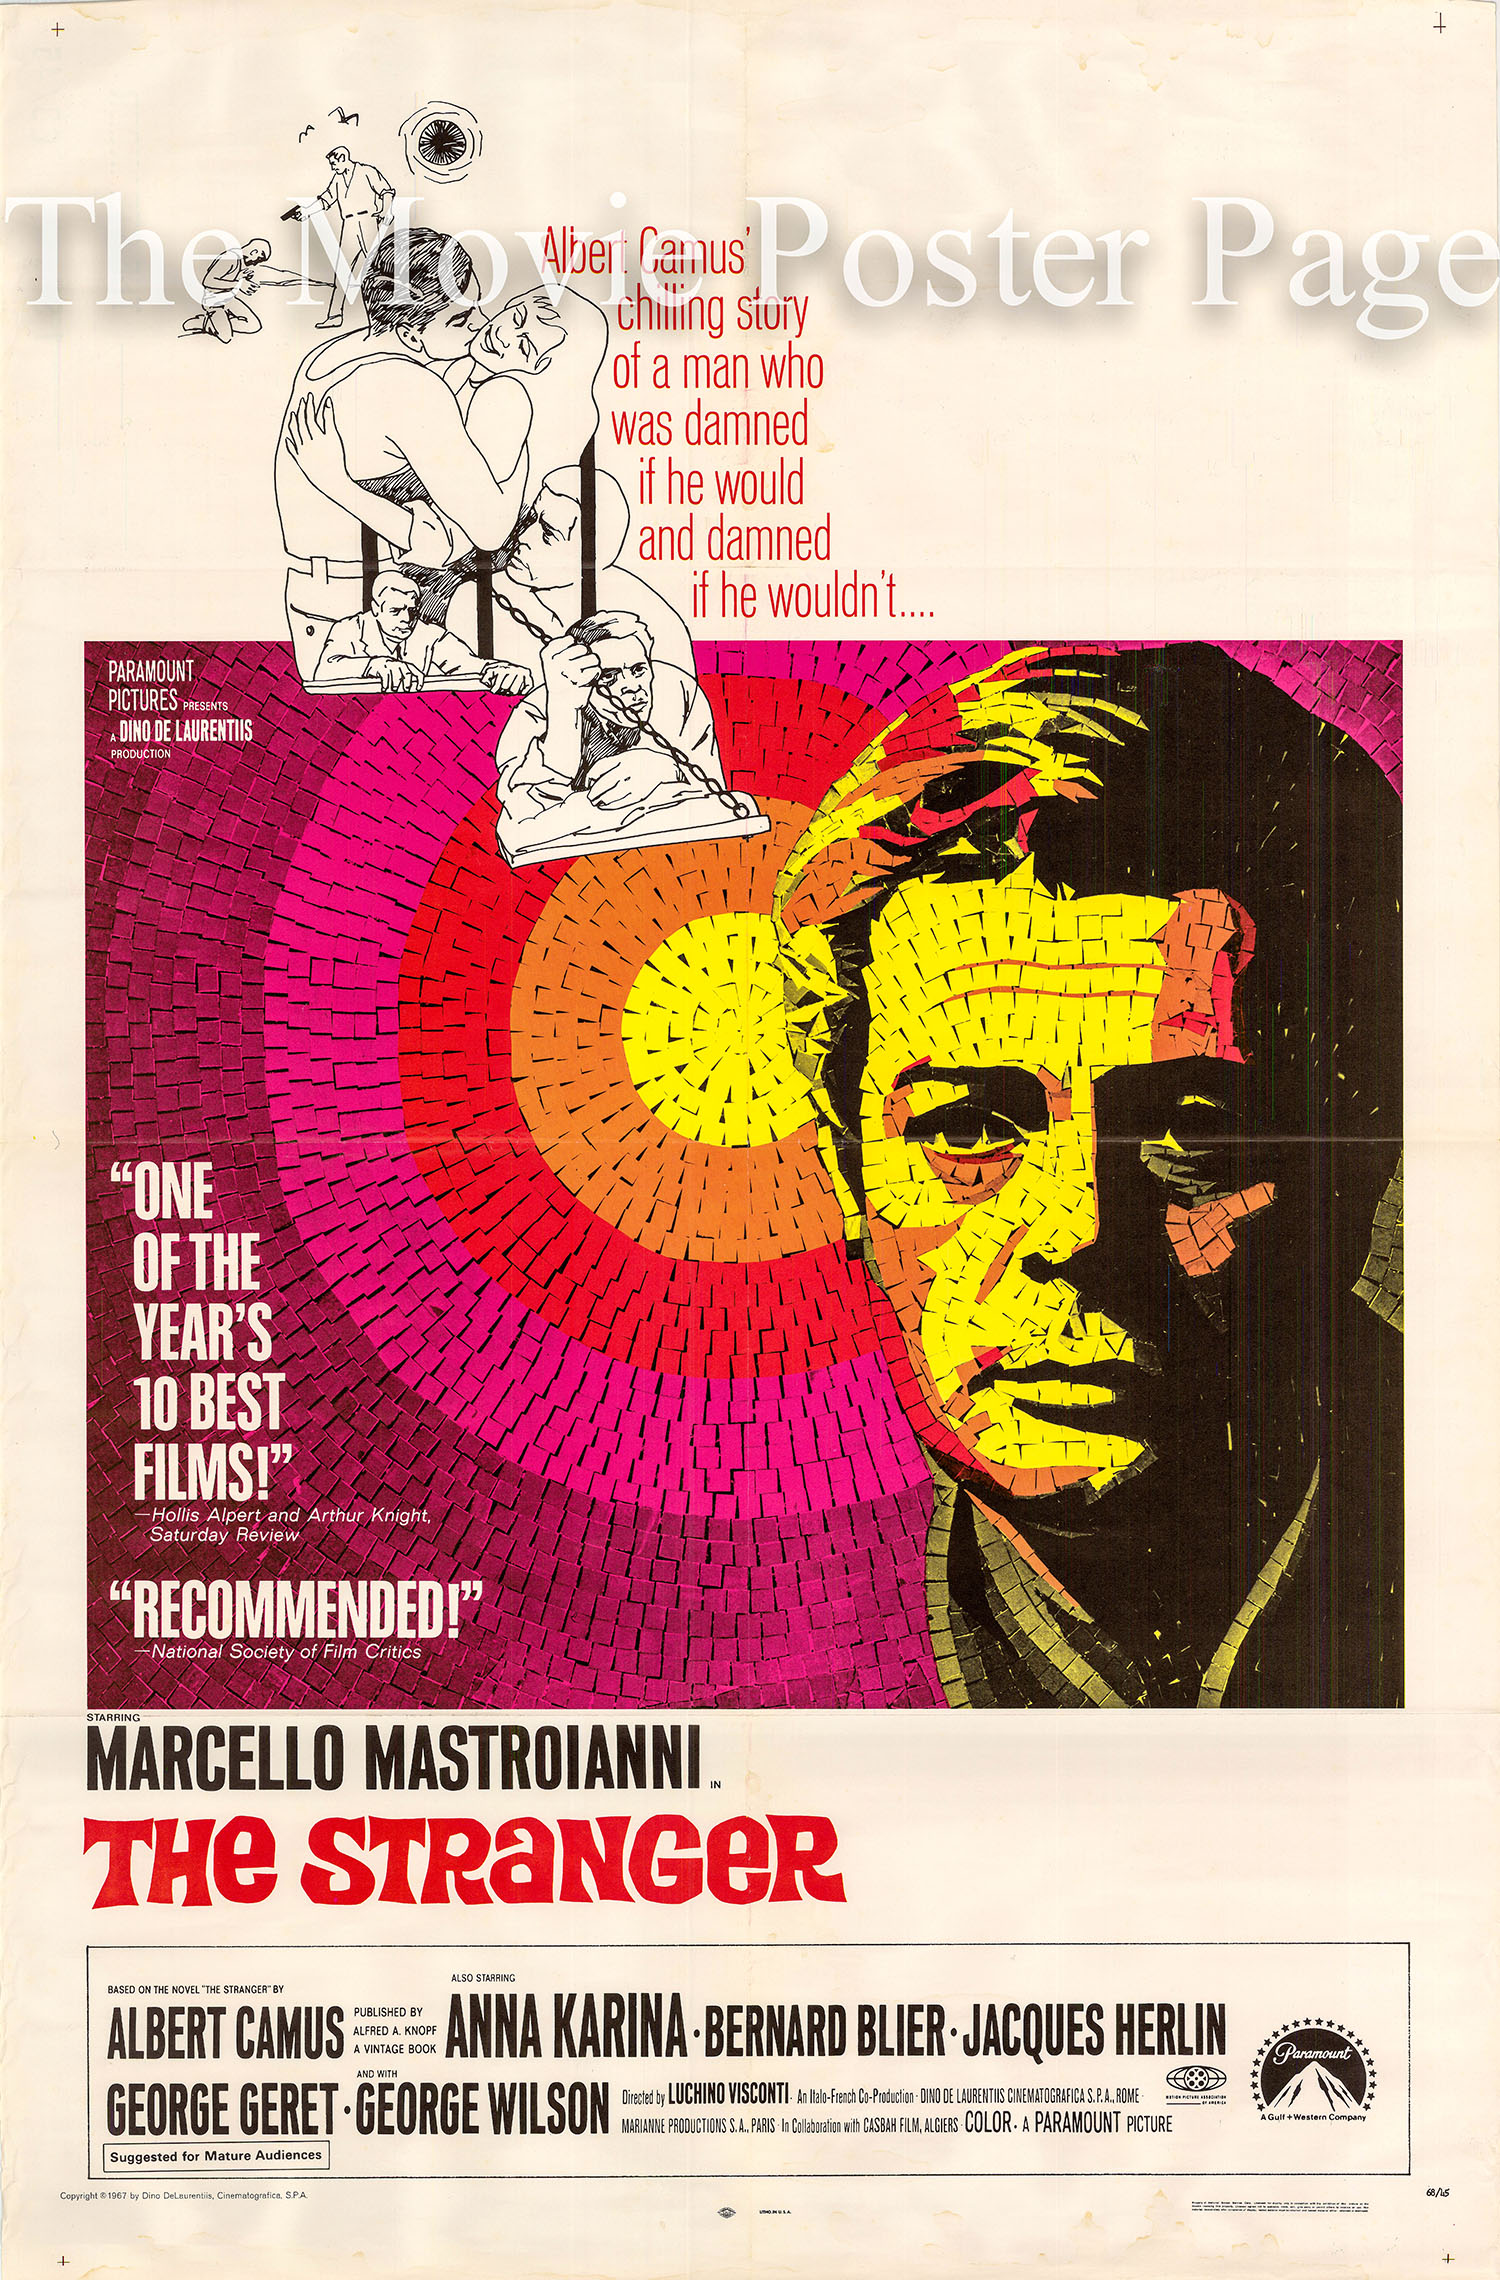 Pictured is a US one-sheet promotional poster for the 1967 Luchino Visconti film The Stranger starring Marcello Mastroianni.